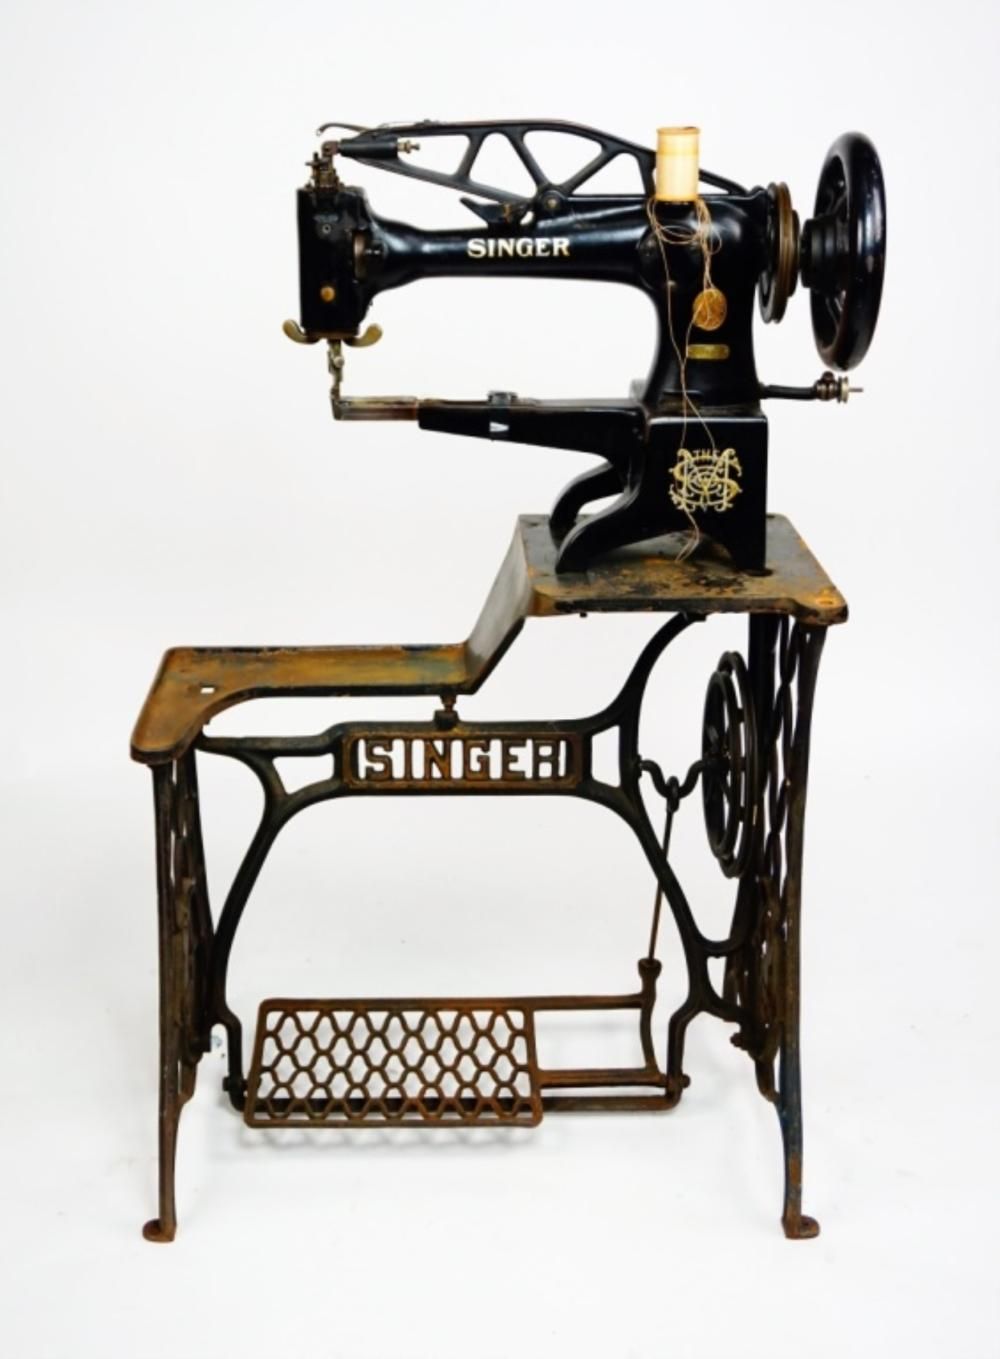 Singer Sewing Machine Models And Prices : singer, sewing, machine, models, prices, Price:, SINGER, INDUSTRIAL, SEWING, MACHINE, MODEL, 29K58, September, 10:00